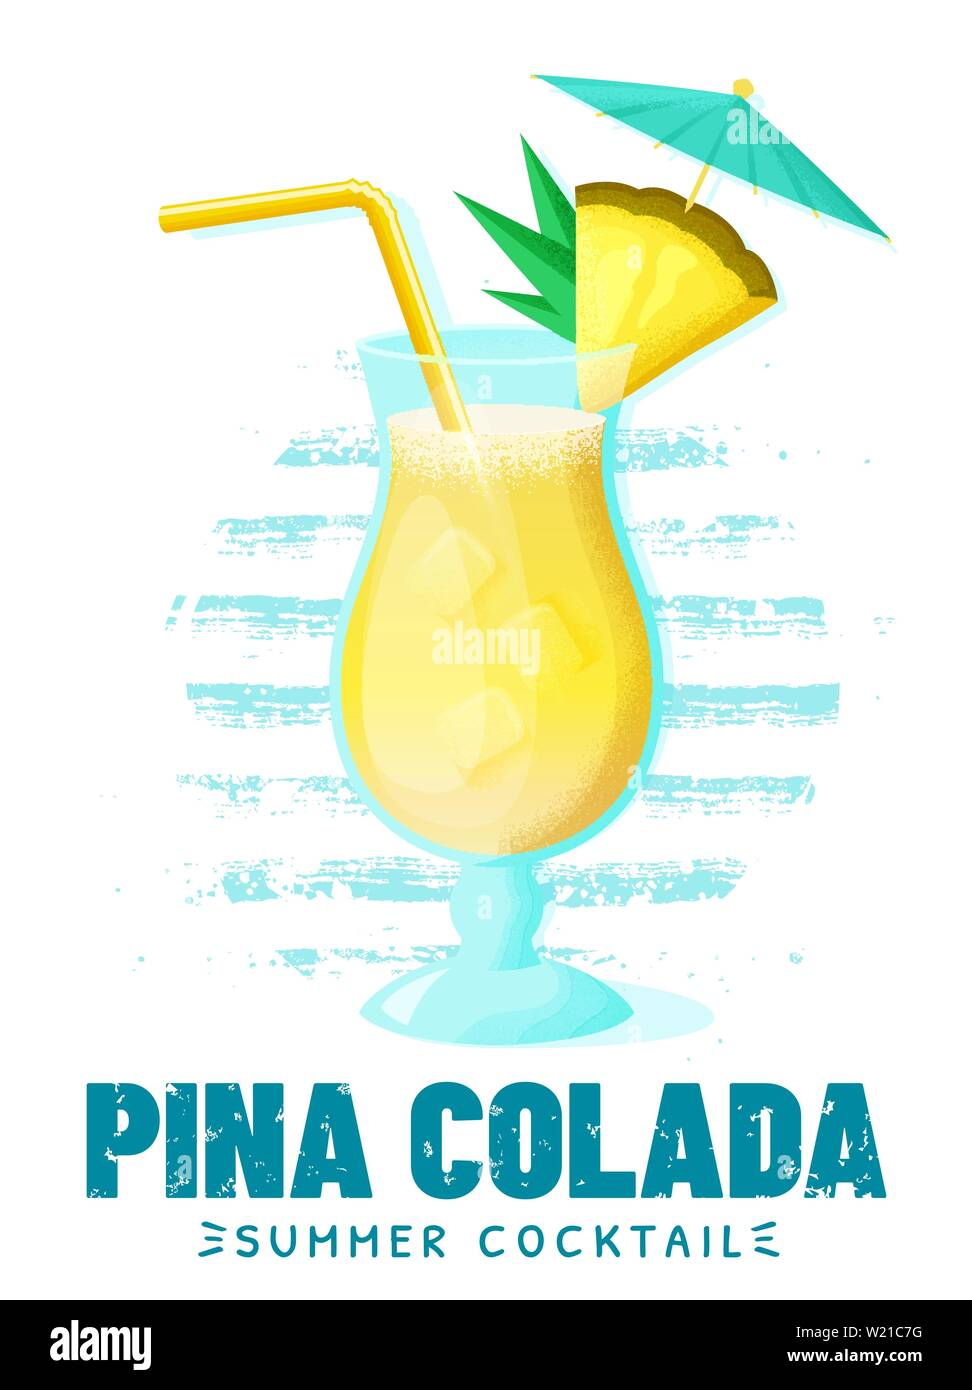 Pina Colada - summer cocktail with pineapple slice, straw and umbrella. Poster with glass of alcoholic drink on striped background. Vector illustratio Stock Vector